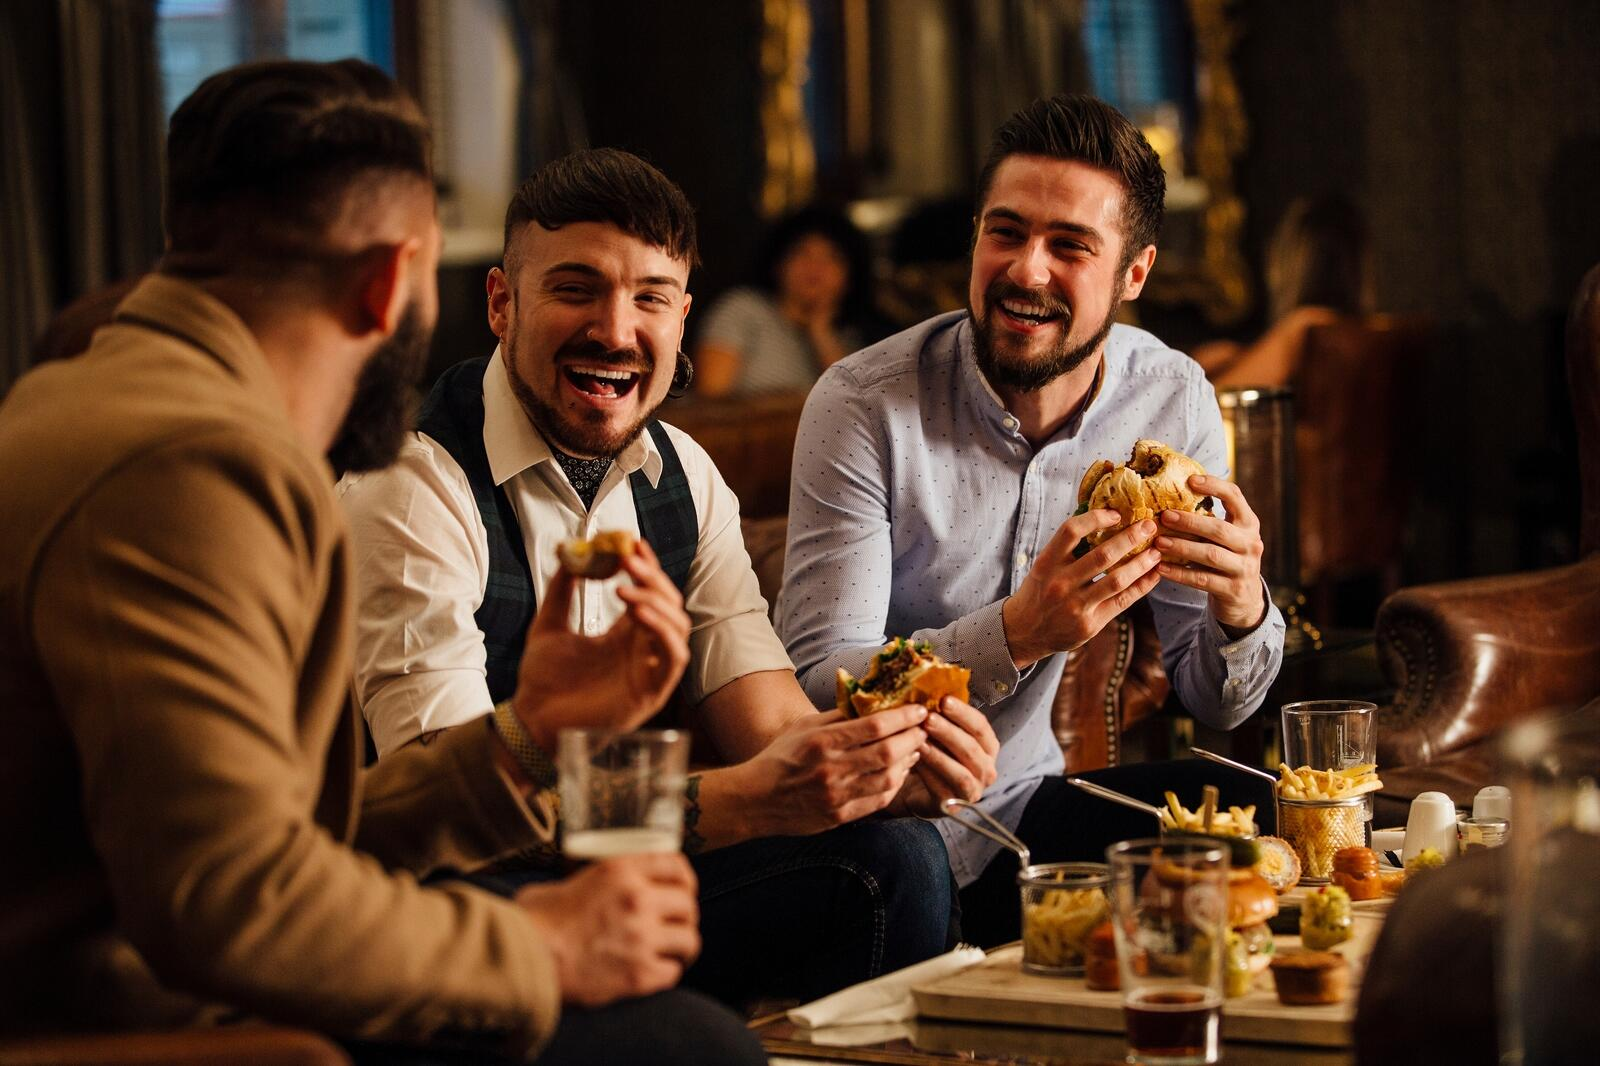 three men laughing while eating burgers and drinking beers